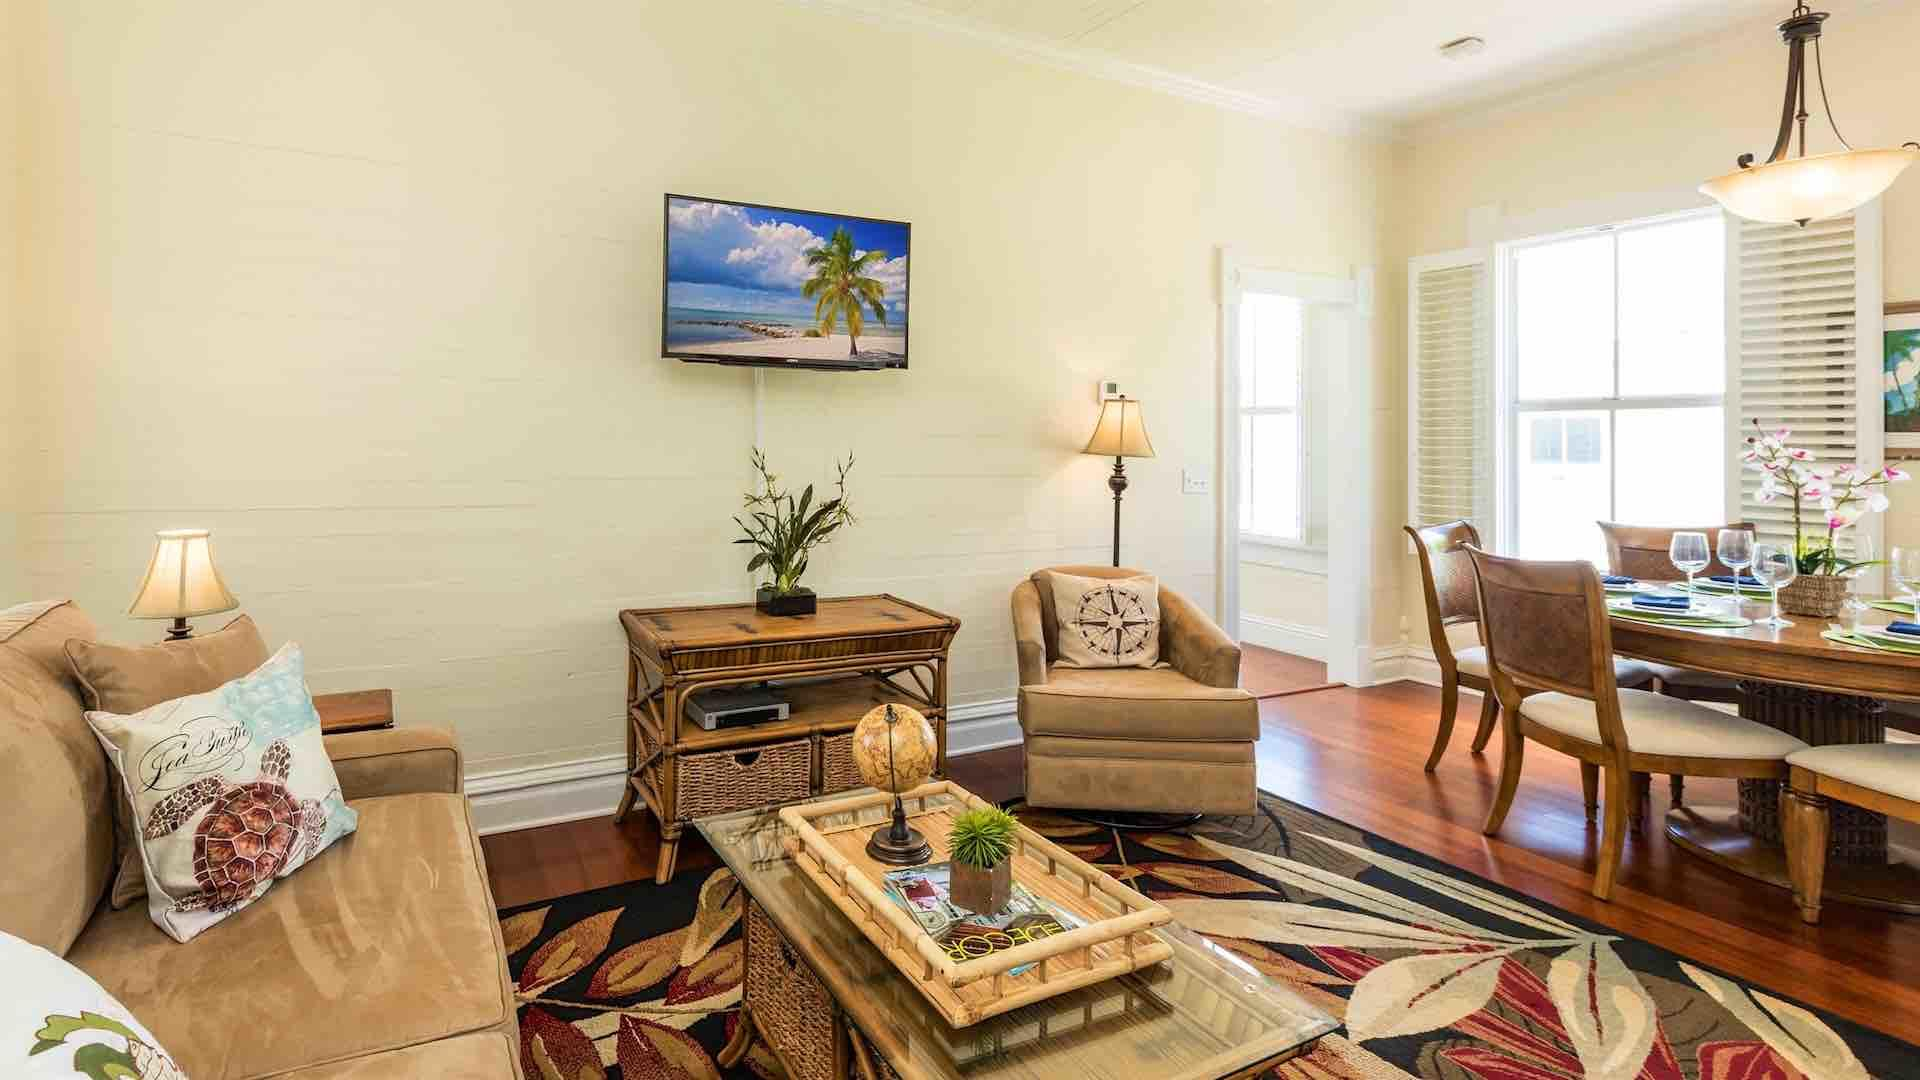 The home has high-speed WiFi and cable throughout...